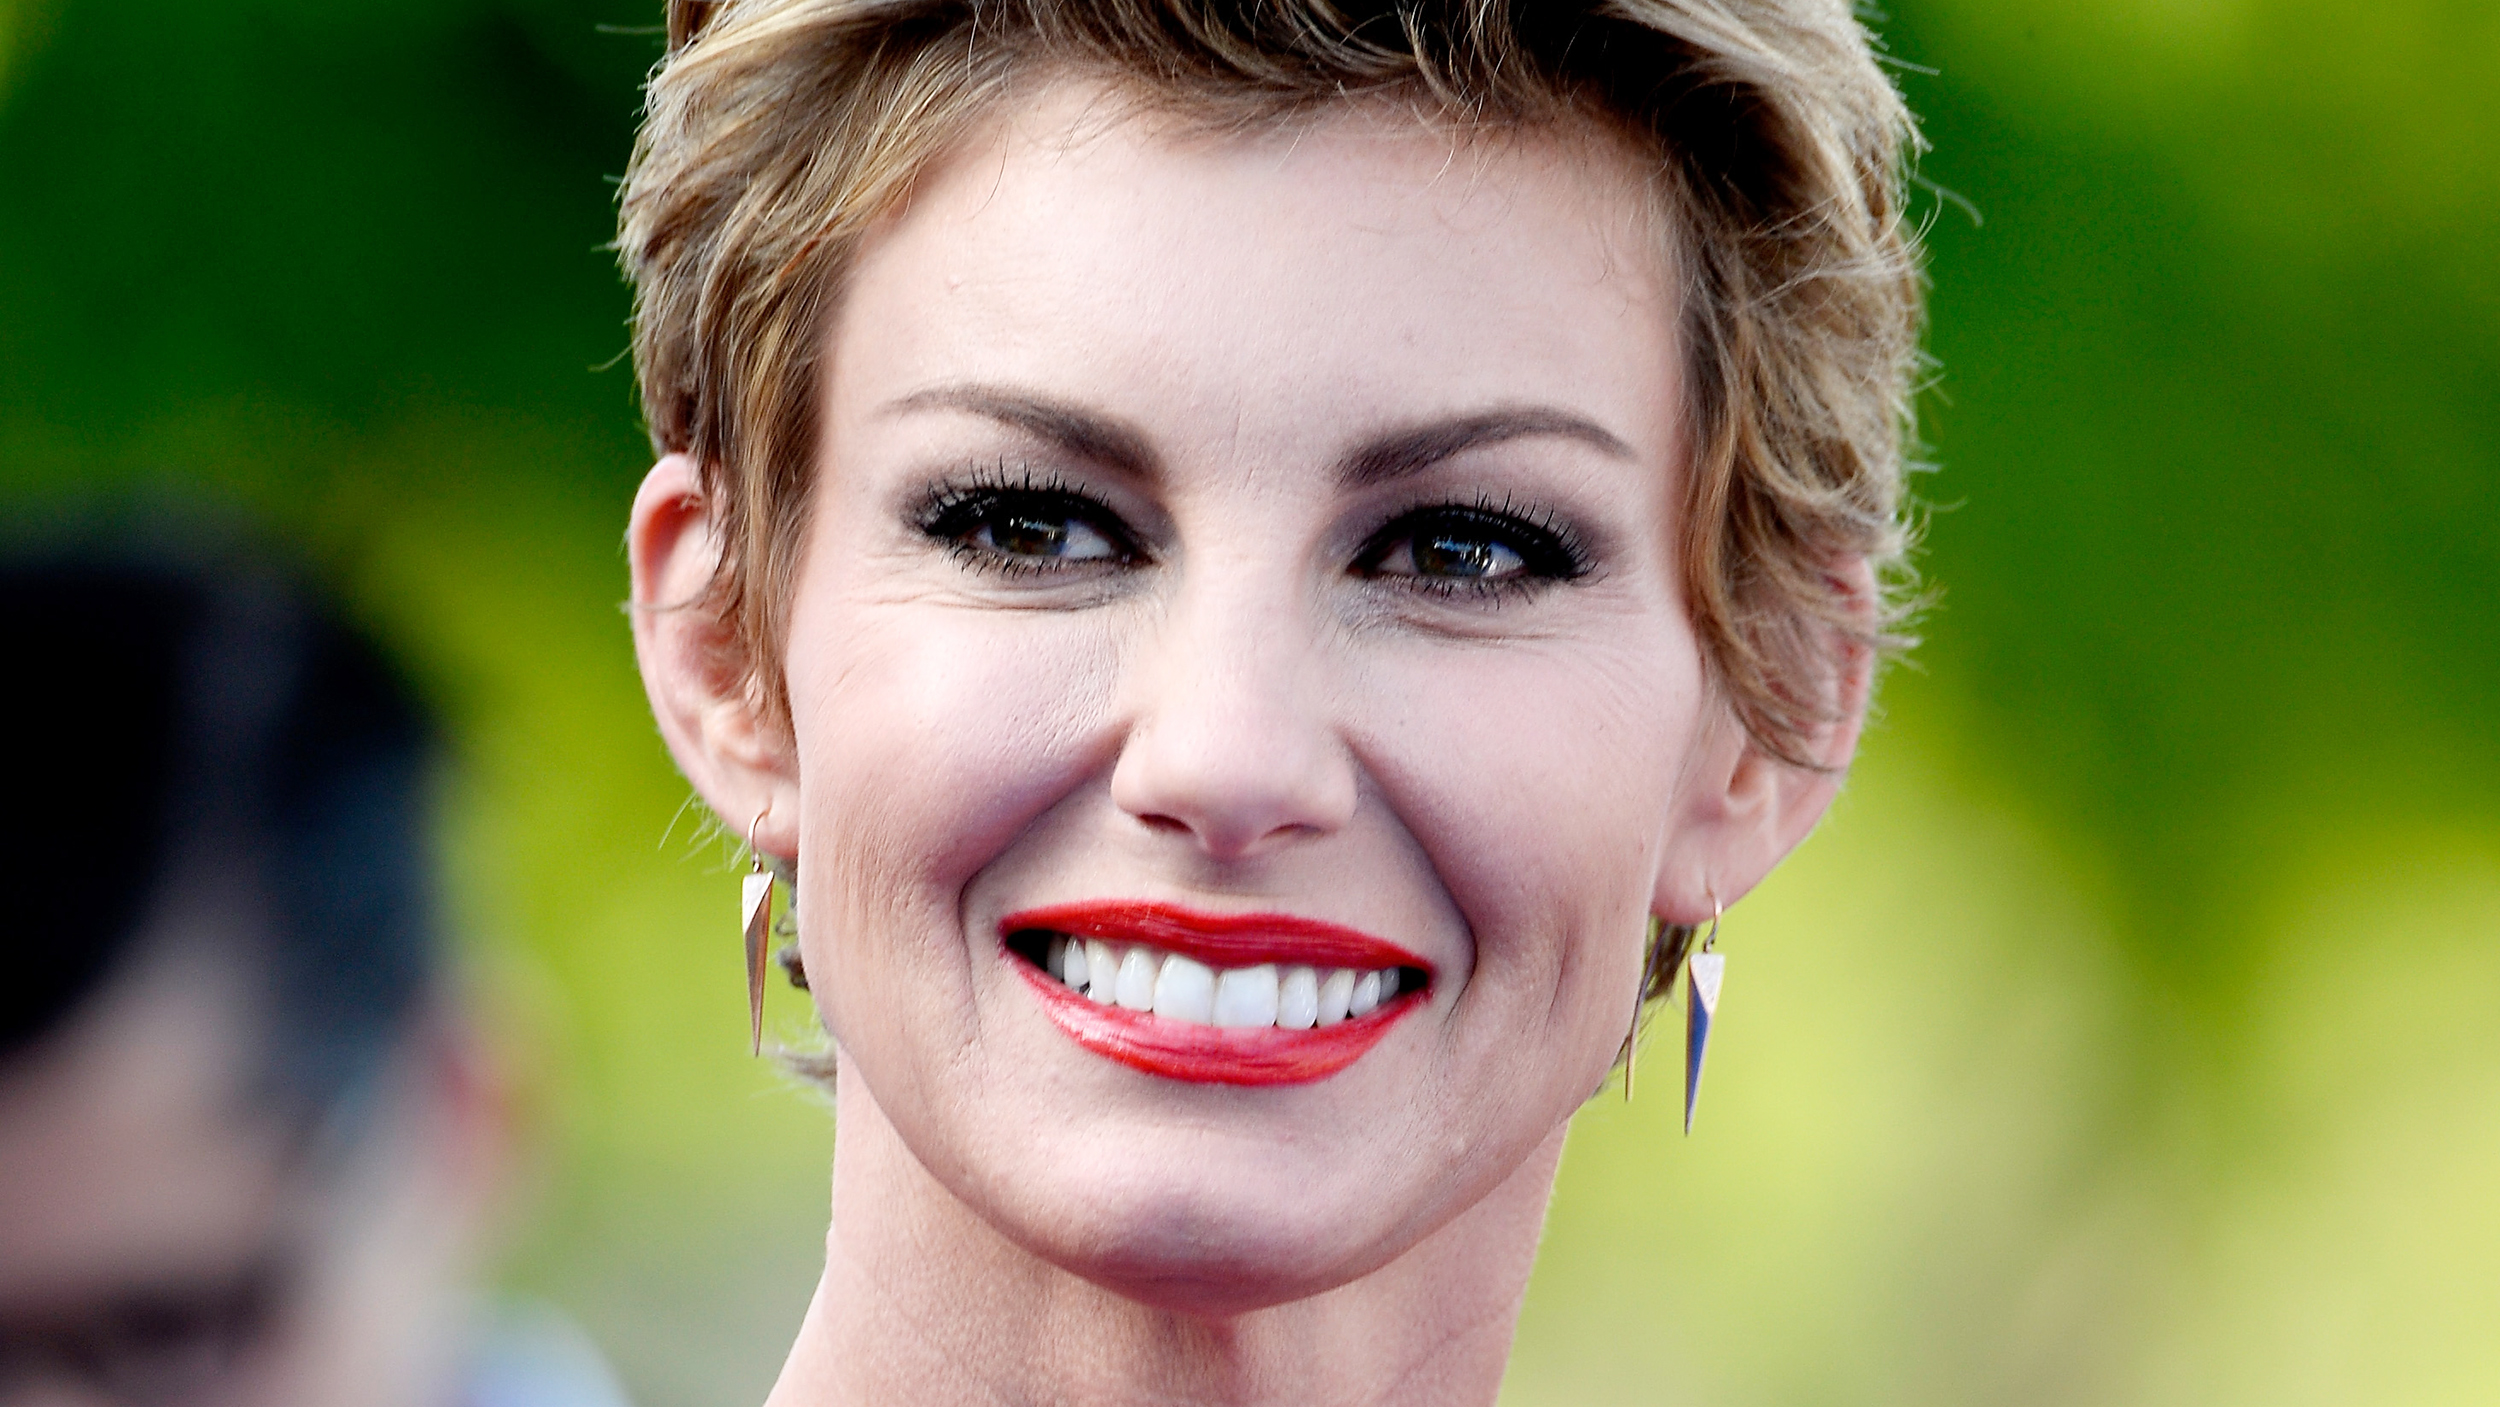 faith hill breathe mp3faith hill - there you'll be, faith hill breathe, faith hill - there you'll be mp3, faith hill there you'll be перевод, faith hill – breathe перевод, faith hill wiki, faith hill - it matters to me, faith hill youtube, faith hill breathe mp3, faith hill where are you christmas, faith hill 2017, faith hill mp3, faith hill vk, faith hill itunes, faith hill cry lyrics, faith hill live, faith hill you will be mine, faith hill photo, faith hill 2002, faith hill parents